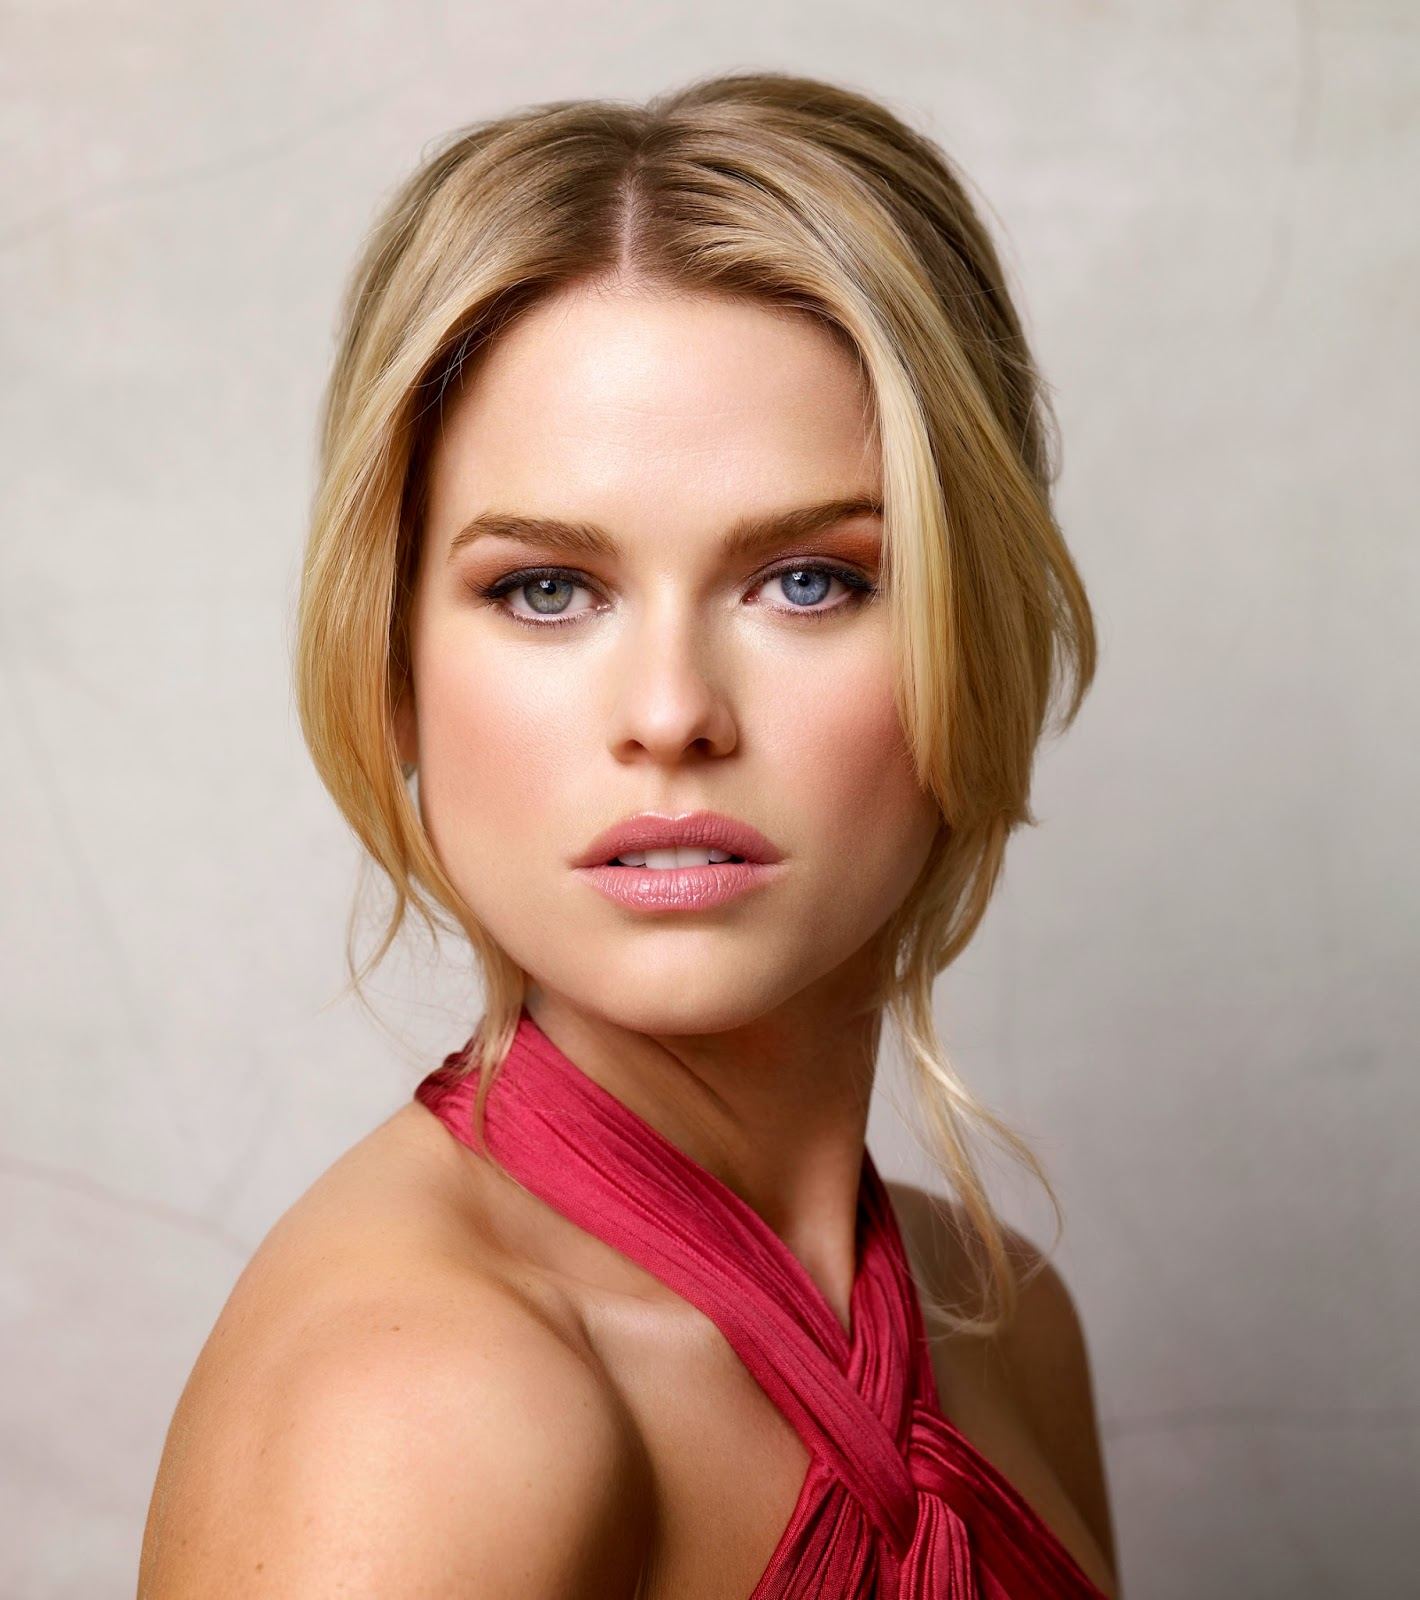 Latest Celebrity Photos Alice Eve Sexy And Hot Wallpapers-6595